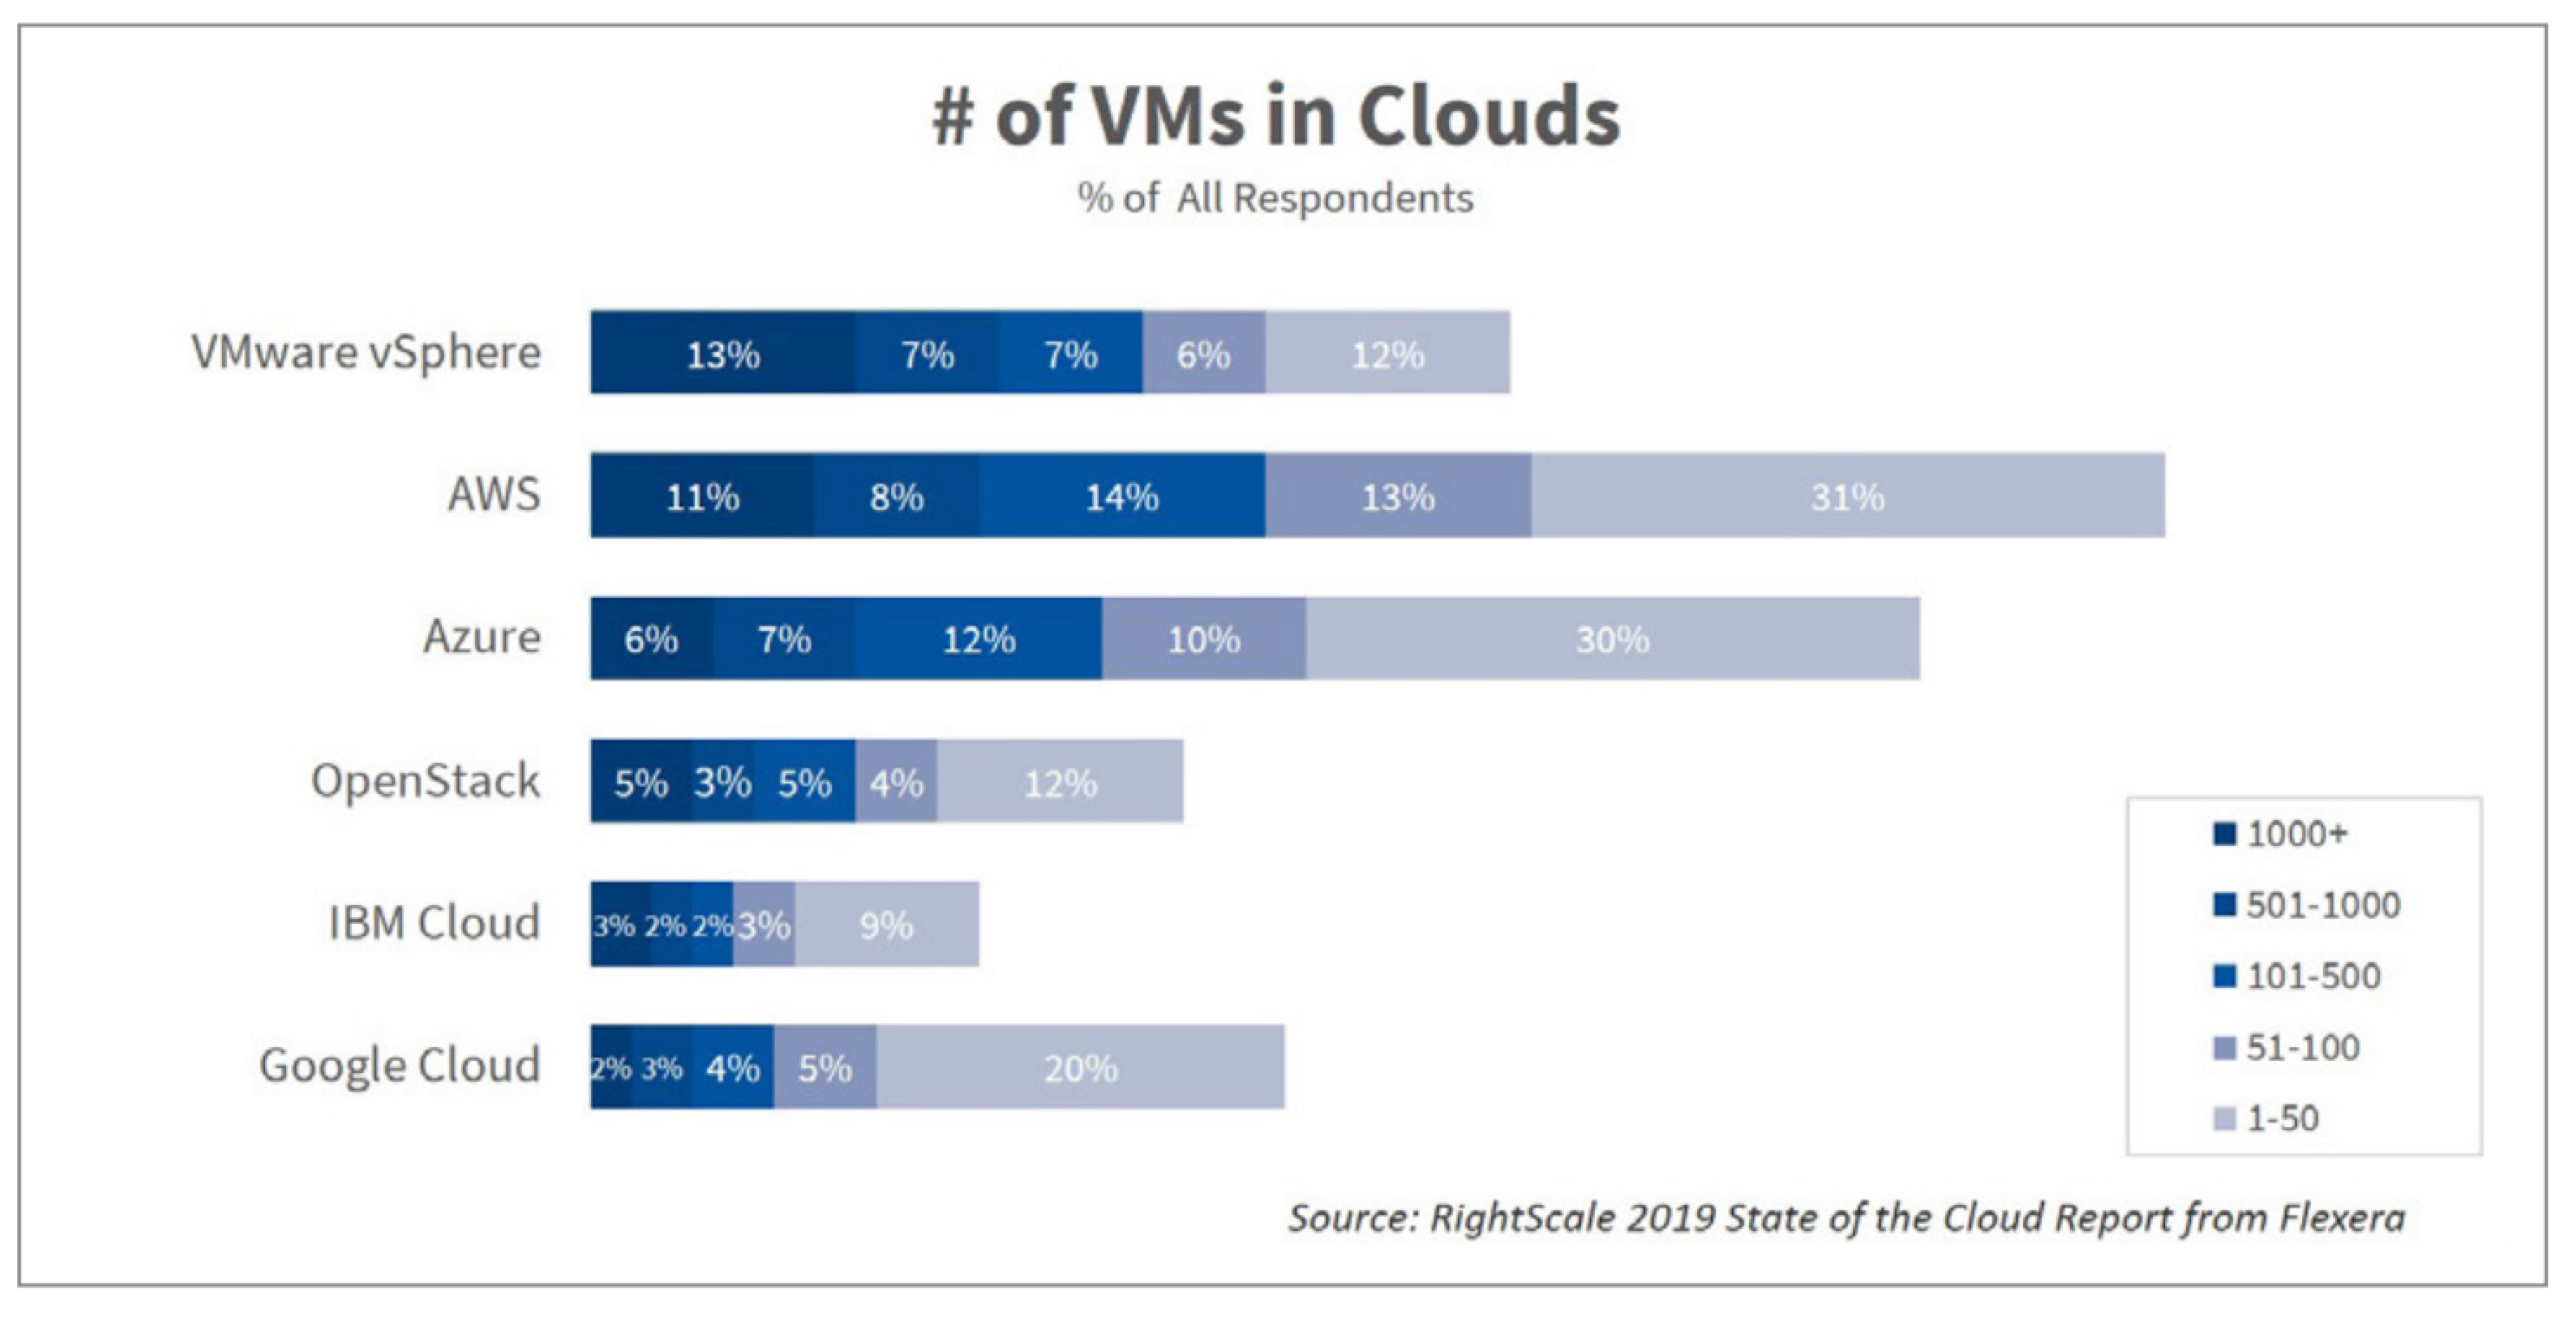 # of VMs in the Cloud - Entreprise, RightScale 2019 State of the Cloud-Report from Flexera